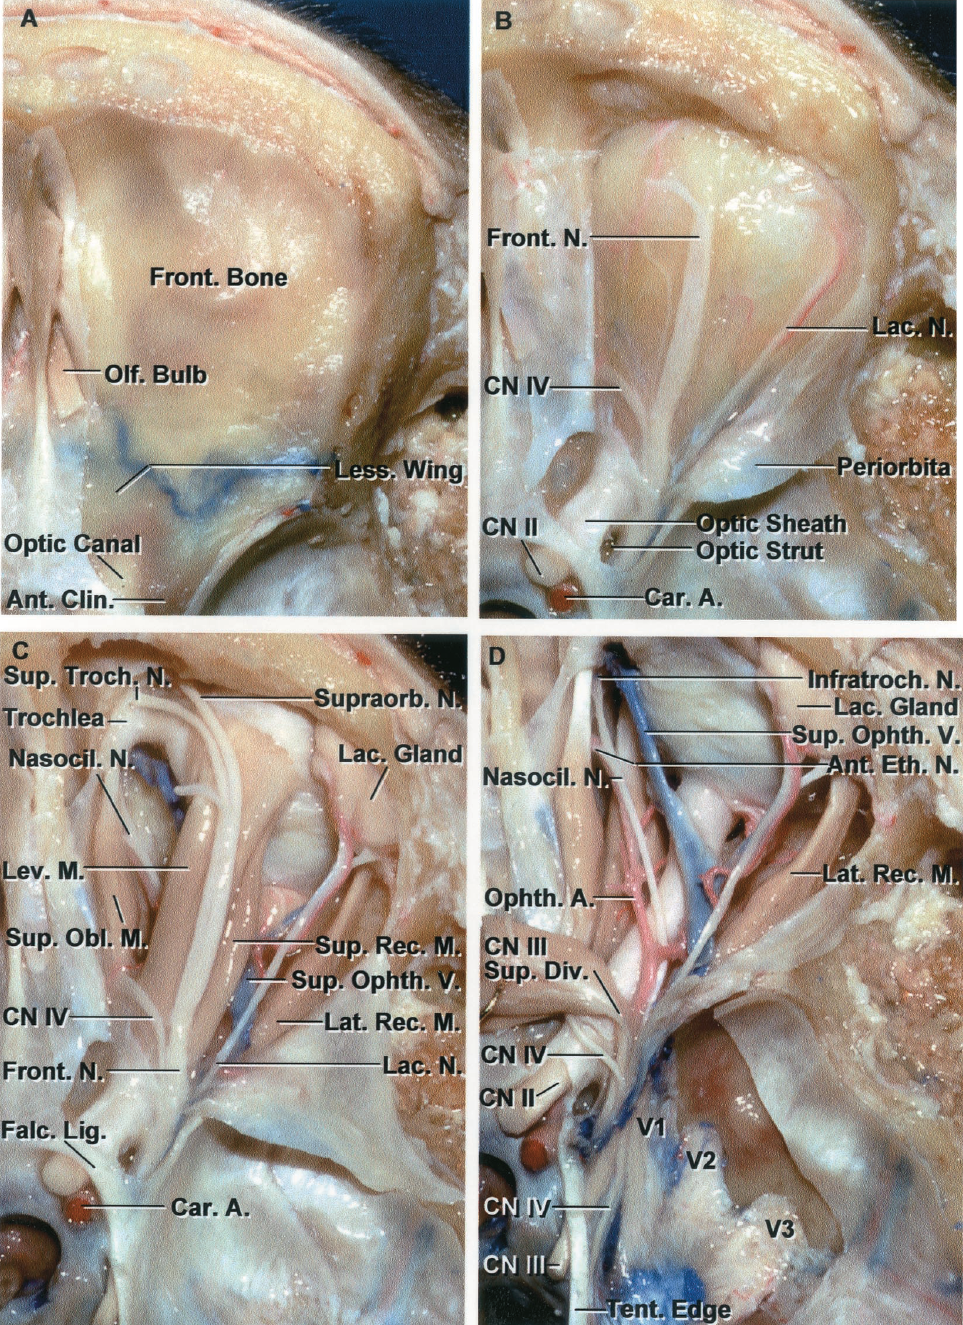 FIGURE 7.2. A-D. Superior view of a stepwise dissection of the neural structures in the orbit and superior orbital fissure. A, the dura has been removed from the part of the frontal and sphenoid bones forming the orbital roof. The olfactory bulb rests on the cribriform plate. B, the orbit and optic canal have been unroofed, the anterior clinoid process removed, and the periorbita opened to expose the trochlear, frontal, and lacrimal nerves coursing in the orbital fat just beneath the periorbita. The optic strut, which has been partially removed, separates the optic canal and superior orbital fissure. C, the orbital fat has been removed. The ophthalmic nerve divides into the lacrimal, frontal, and nasociliary nerves. The frontal nerve passes through the superior orbital fissure and courses on the levator muscle where it divides into a supratrochlear nerve, which passes above the trochlea of the superior oblique muscle, and the supraorbital nerve, which passes through a foramen or notch in the supraorbital margin. The lacrimal nerve passes above the lateral rectus muscle to innervate the lacrimal gland and convey sensation to the area around the lateral part of the supraorbital margin. The trochlear nerve passes medially above the levator muscle to reach the superior oblique muscle. The nasociliary branch of the ophthalmic nerve passes between the superior rectus muscle and the optic nerve to reach the medial side of the orbit. The tendon of the superior oblique muscle passes through the trochlea and below the superior rectus muscle to insert on the globe between the attachment of the superior and lateral rectus muscles. D, the frontal nerve and the levator and superior rectus muscles have been divided and reflected. This exposes the superior ophthalmic vein, ophthalmic artery, and nasociliary nerve as they pass above the optic nerve. The dura lining the middle cranial fossa has been removed to expose the oculomotor, trochlear, and ophthalmic nerves as they course in 